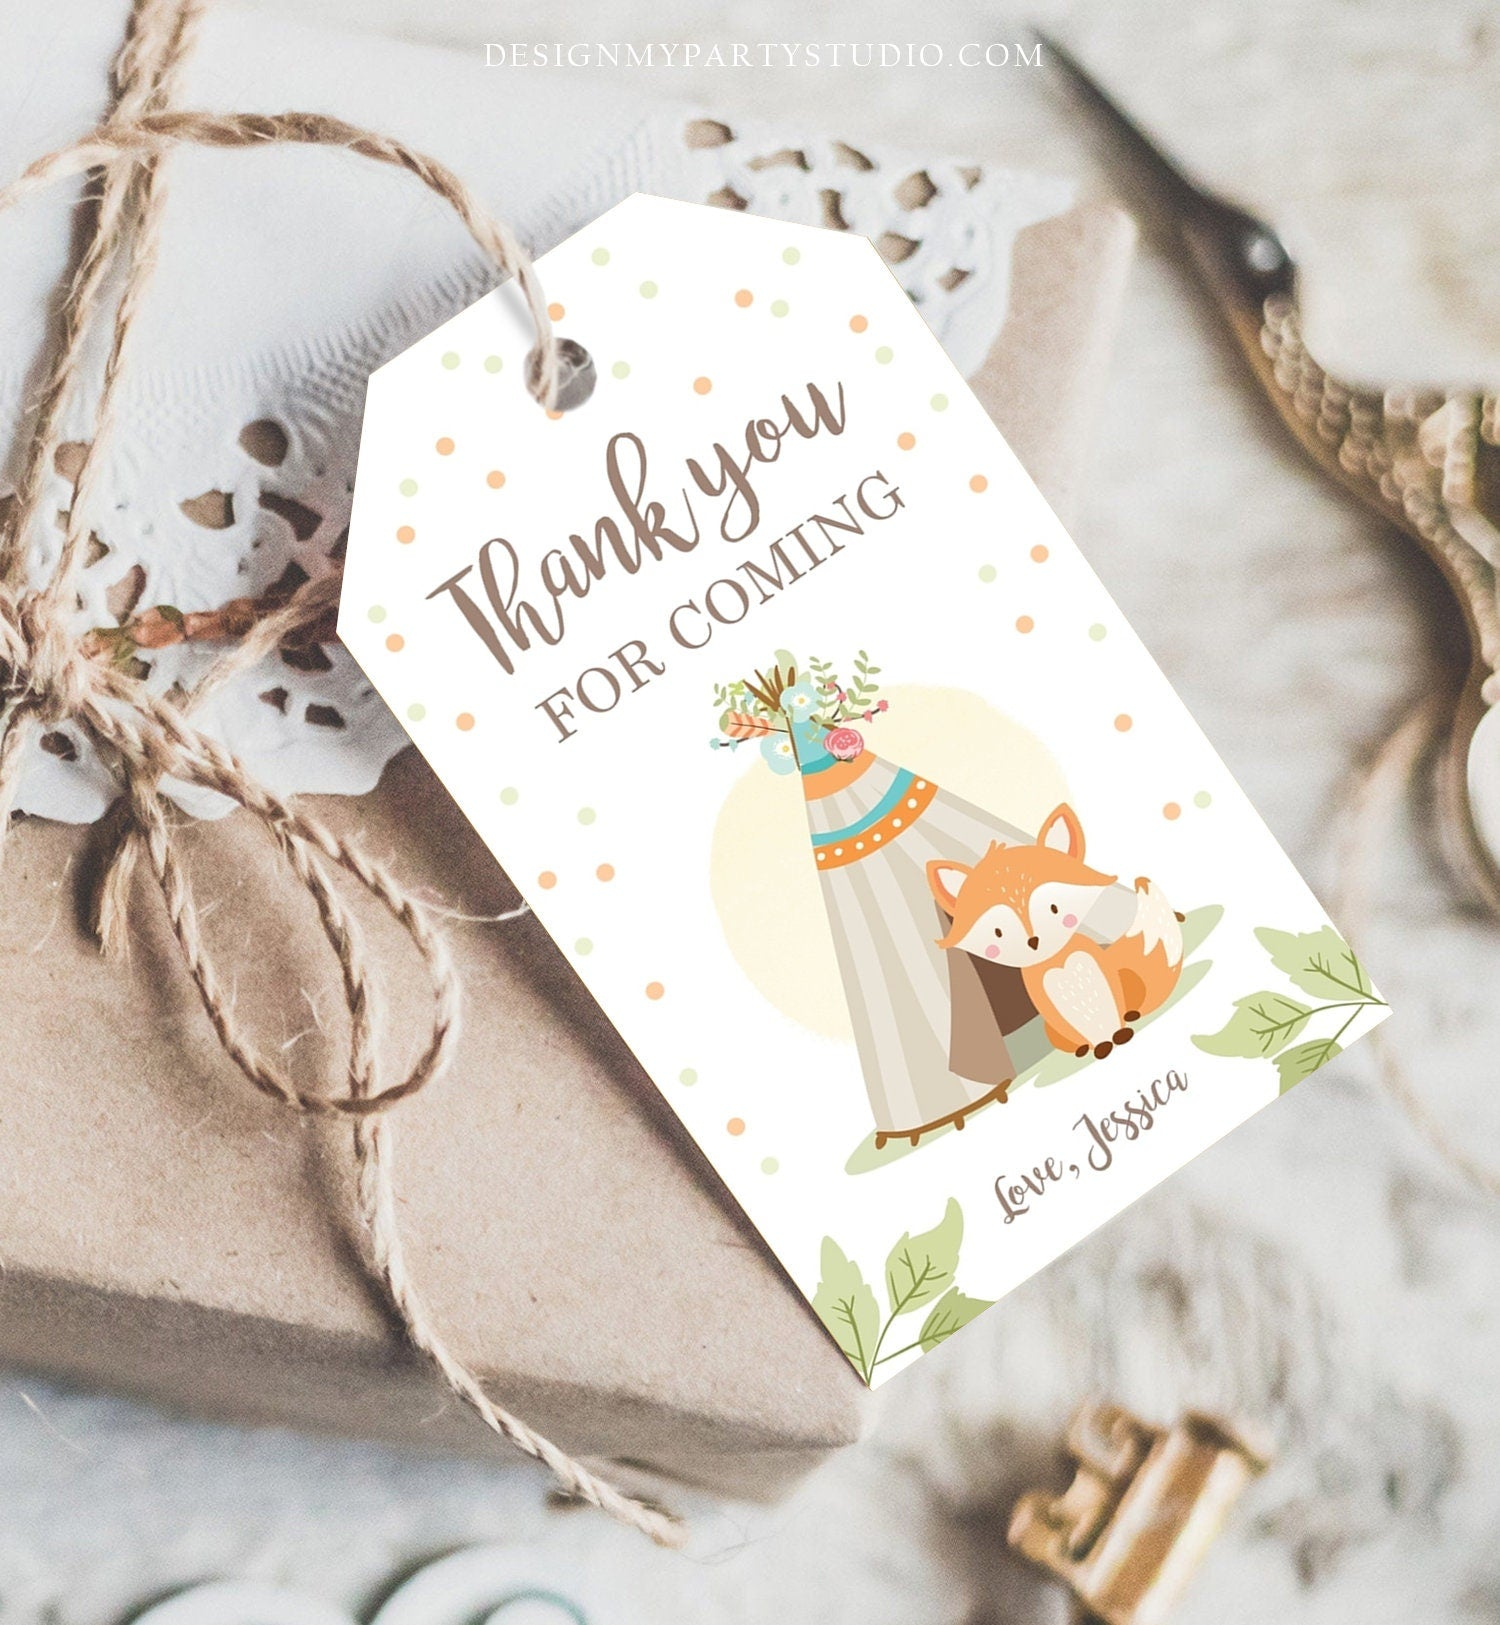 Editable Woodland Baby Shower Thank you Tags Favor tags Fox Baby Shower Teepee Boho Tribal Woodland Floral Shower Template Corjl 0052